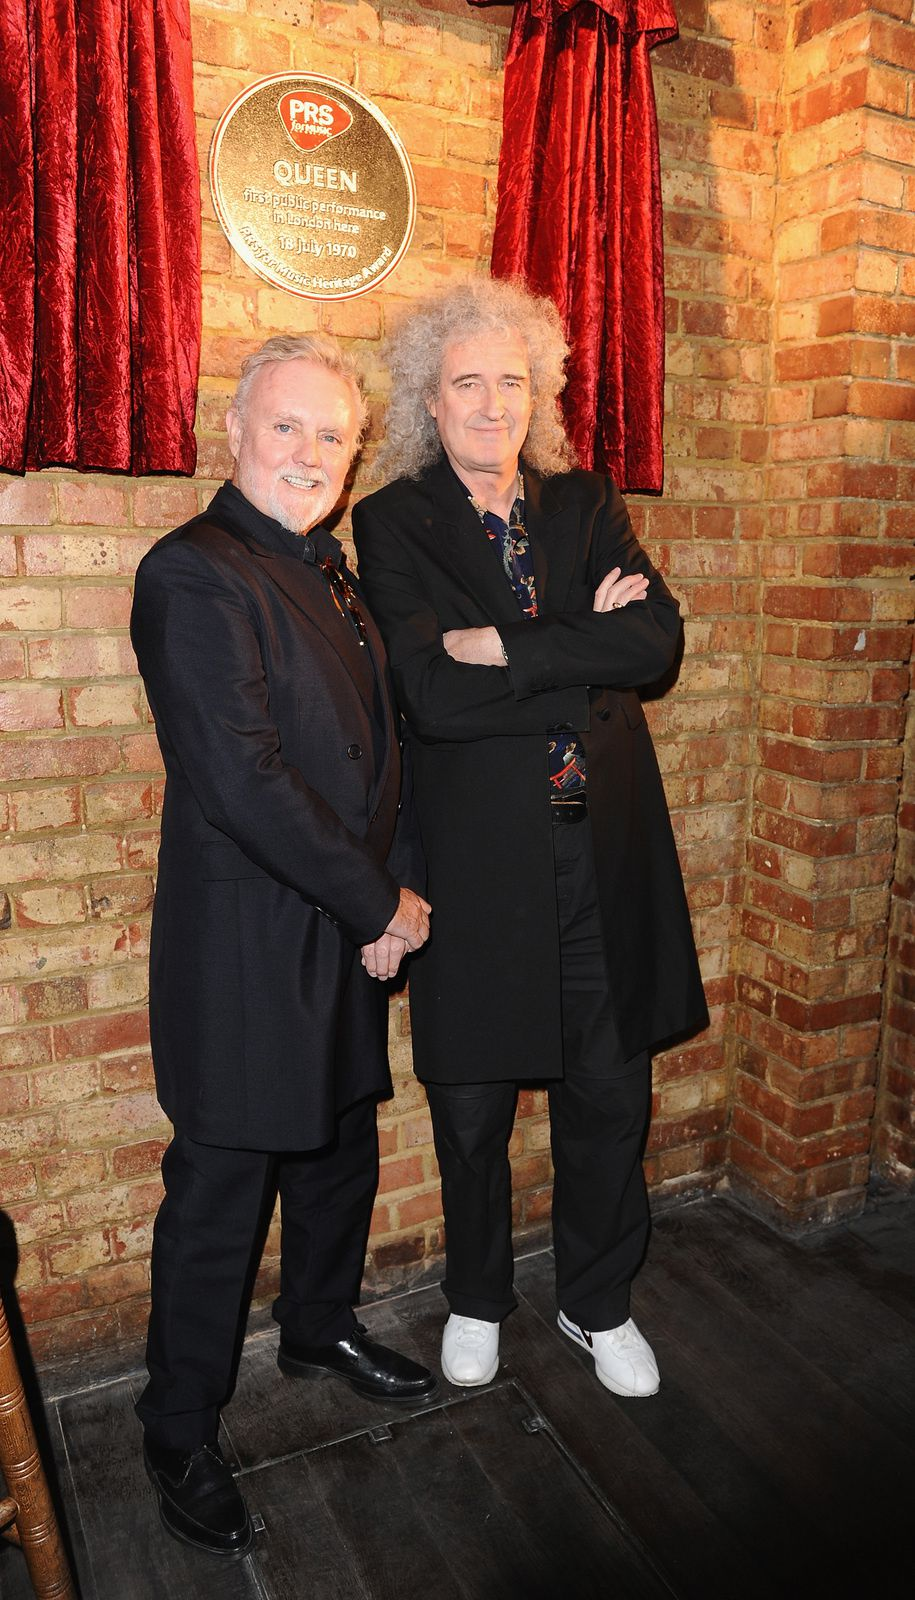 oger Taylor and Brian May, Queen (2013)